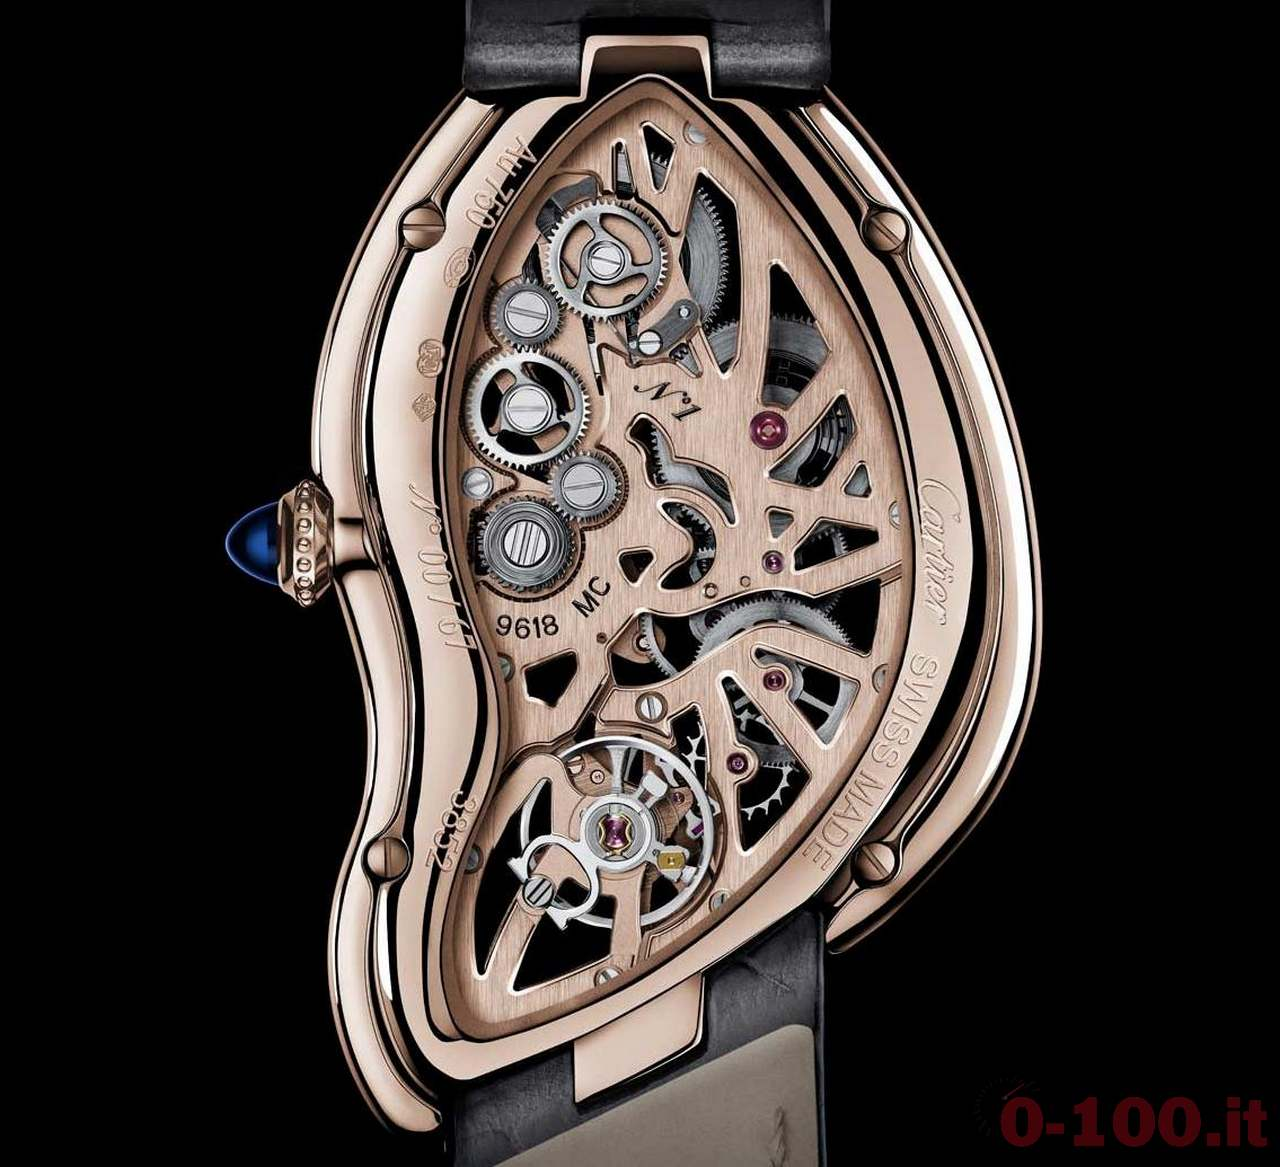 anteprima-sihh-2016-cartier-crash-skeleton-pink-gold-limited-edition-prezzo-price_0-1004